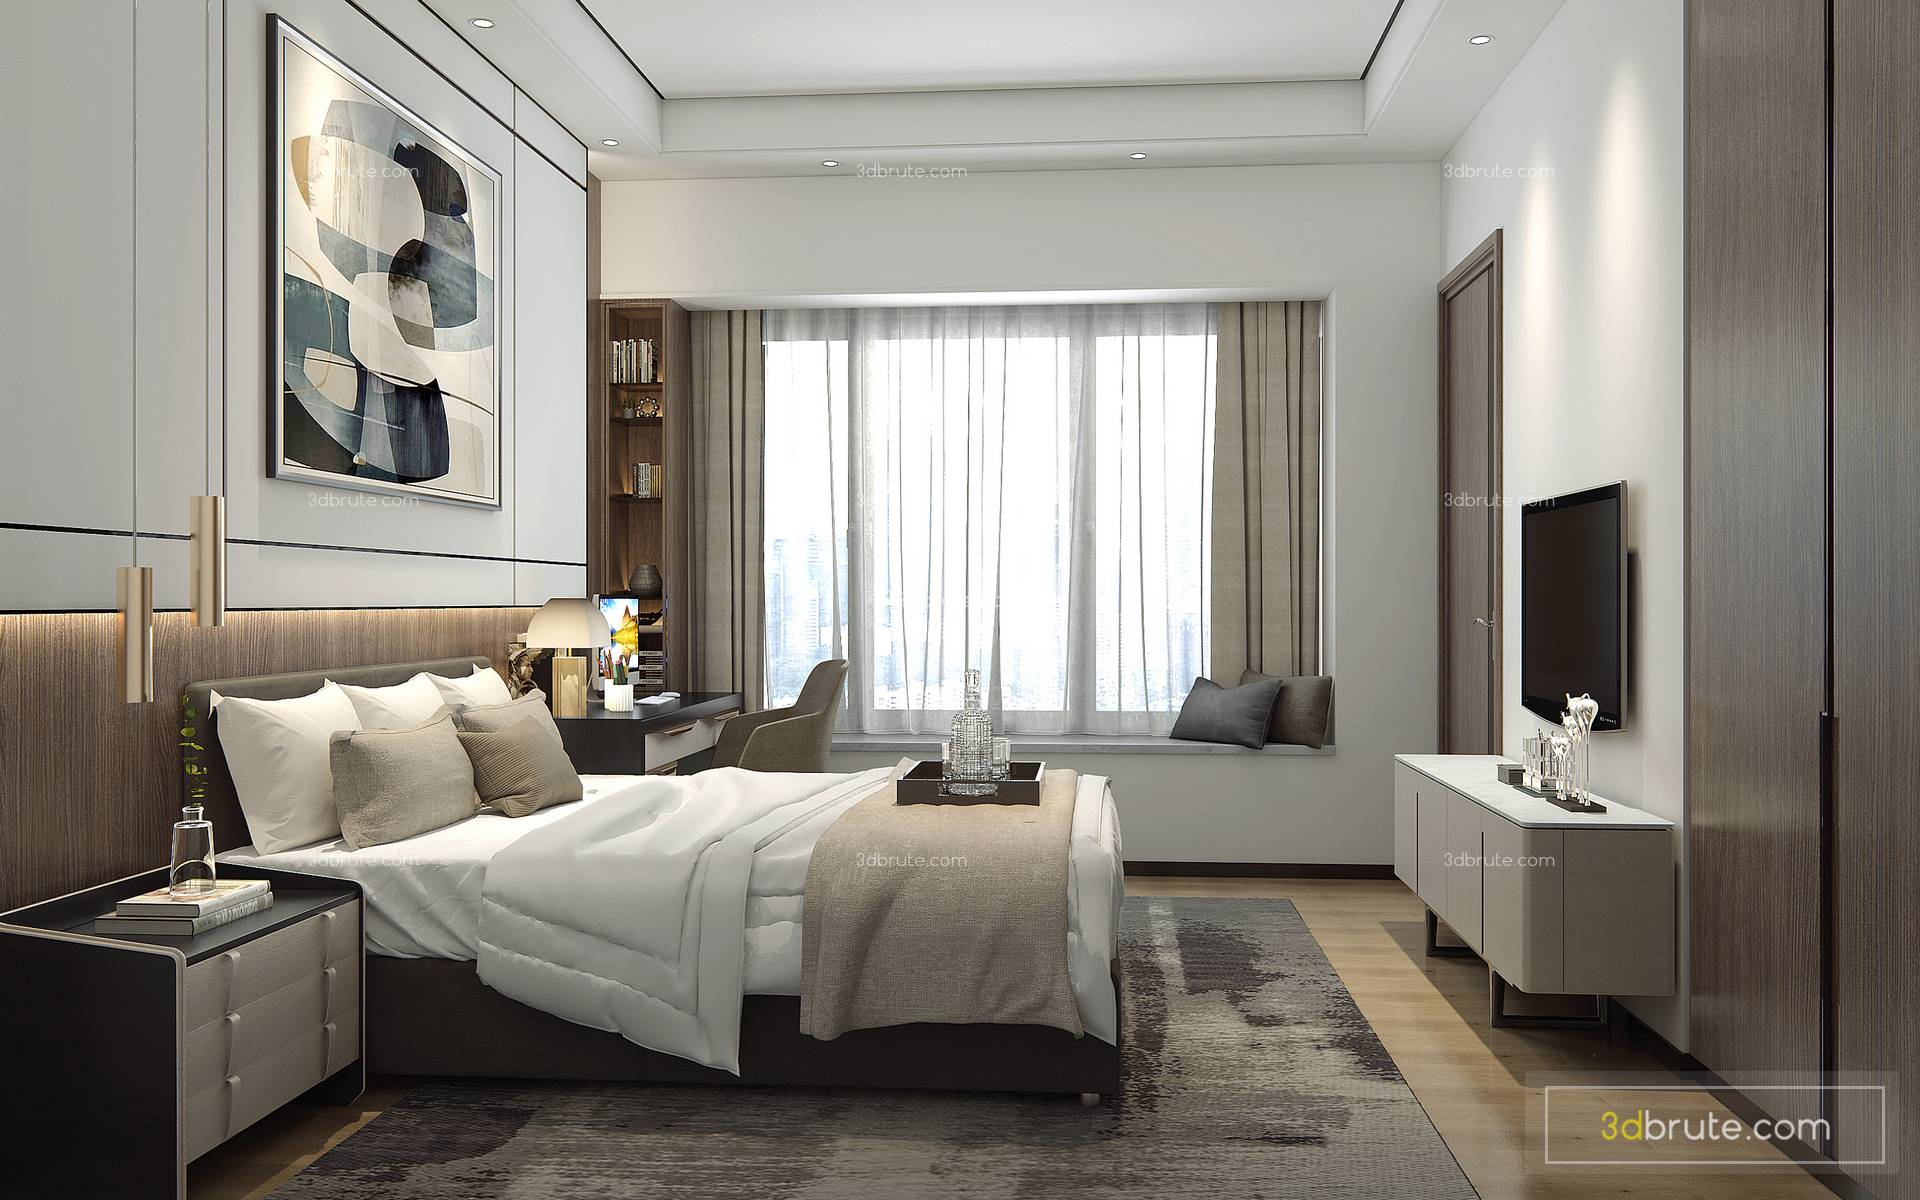 . Sell Modern bedroom collection 3dmodel   Download  3d Models Free  3dbrute